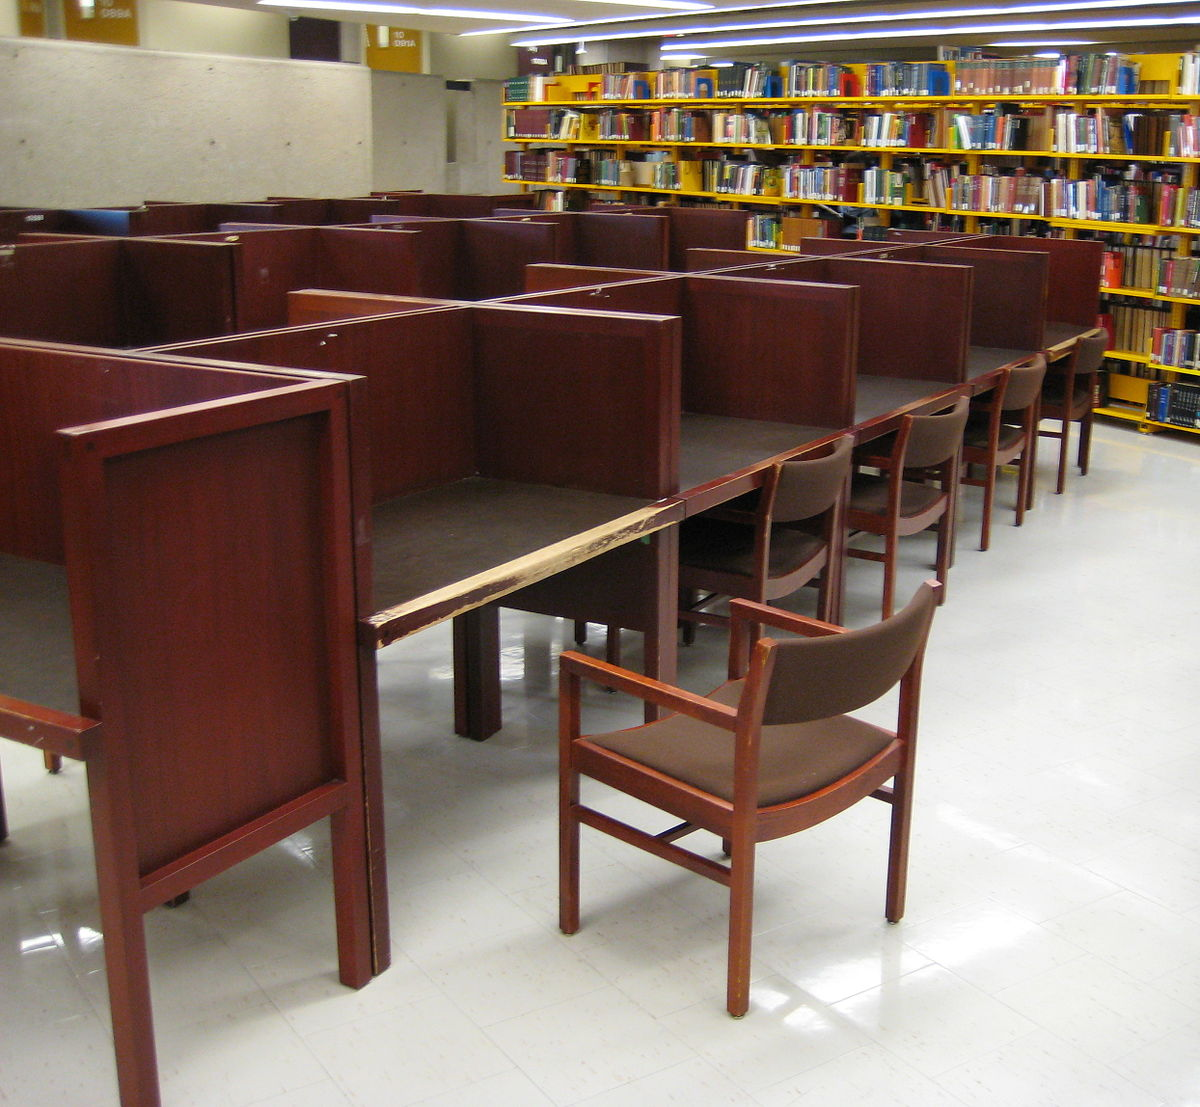 Study Carrels for School, College & Public Libraries - K ...